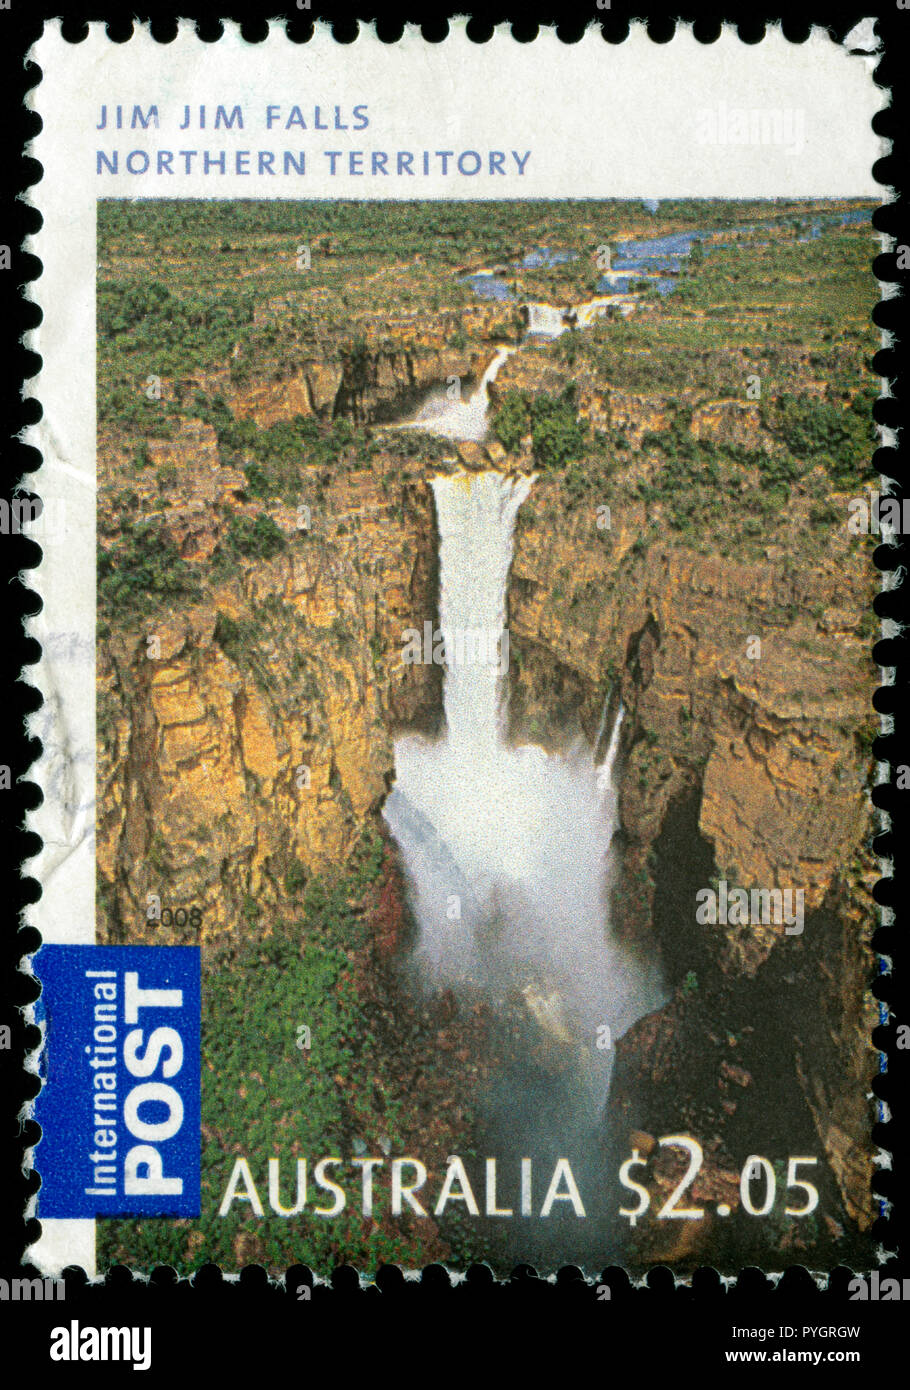 Postmarked stamp from Australia in the  International Post. Waterfalls of Australia series issued in 2008 - Stock Image